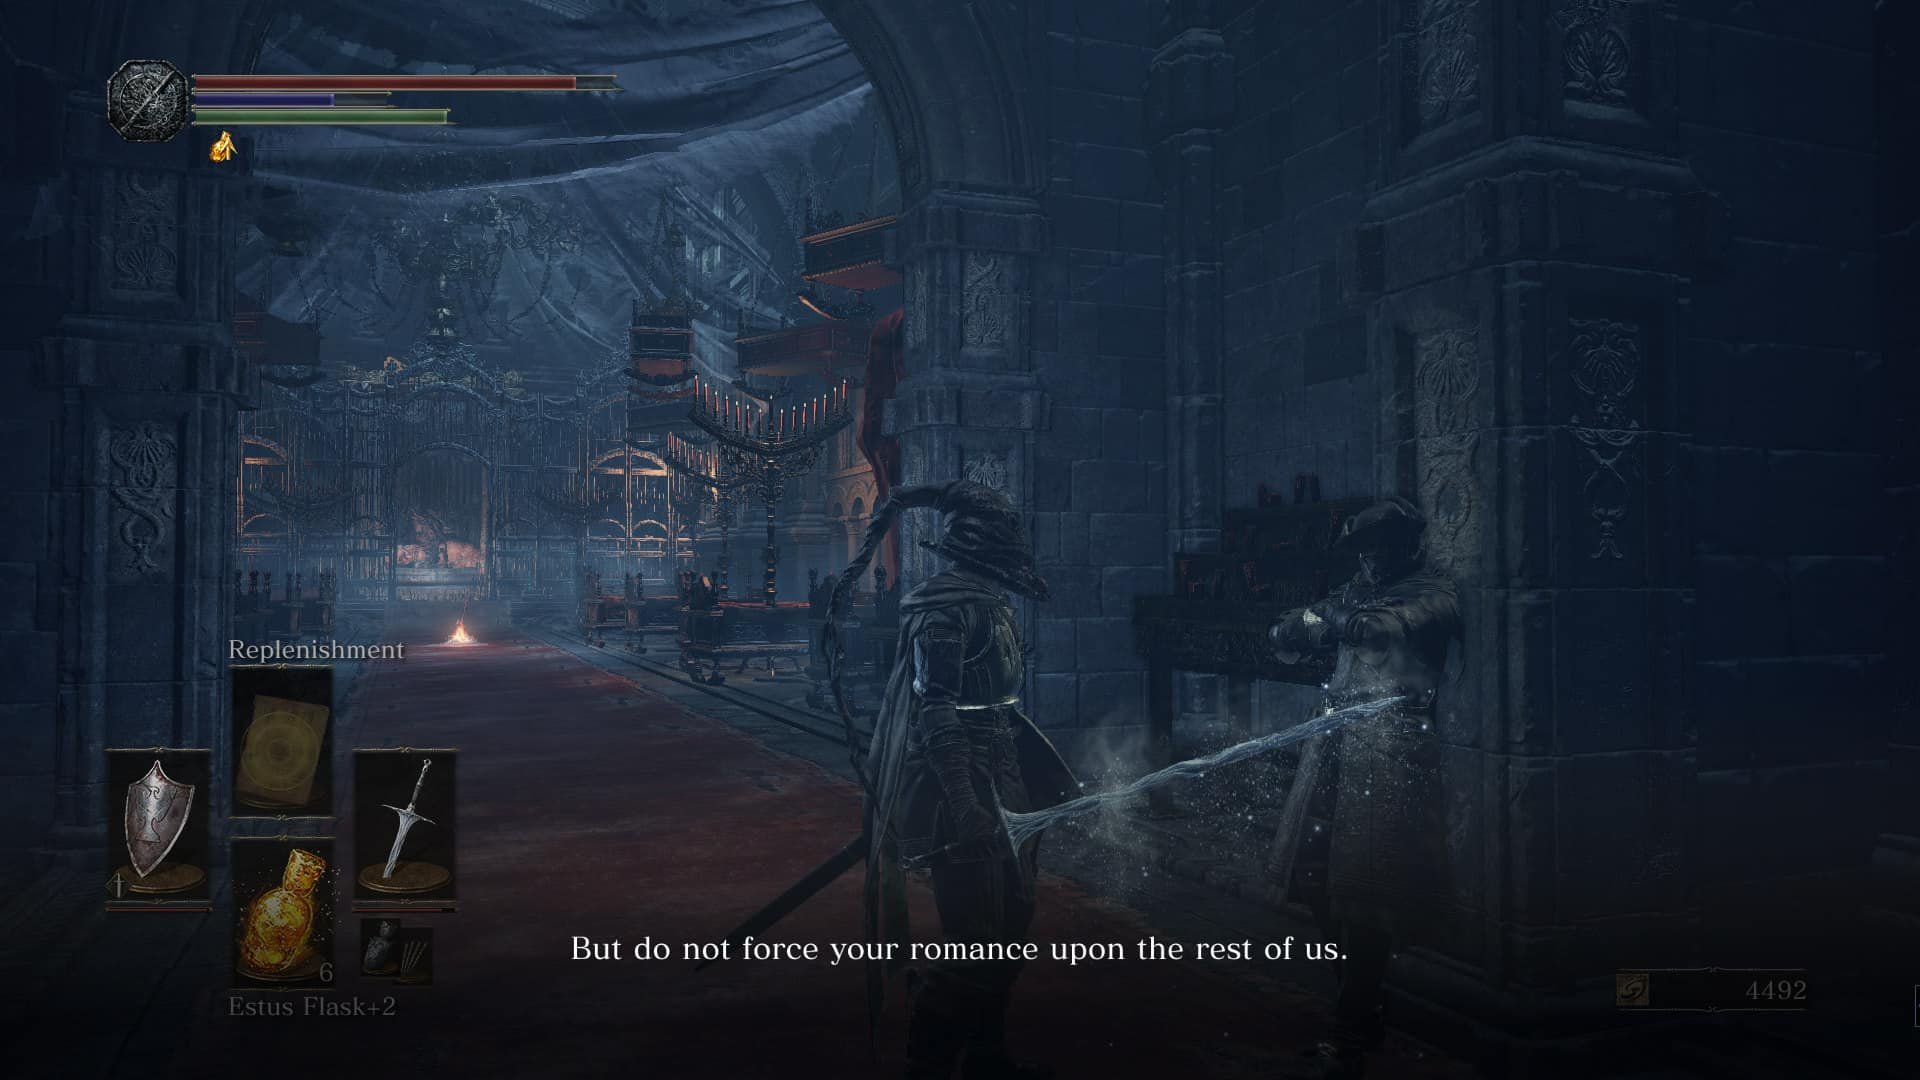 Dark Souls 3 has an interesting cast of characters, even if a few could use a bit more dialog.